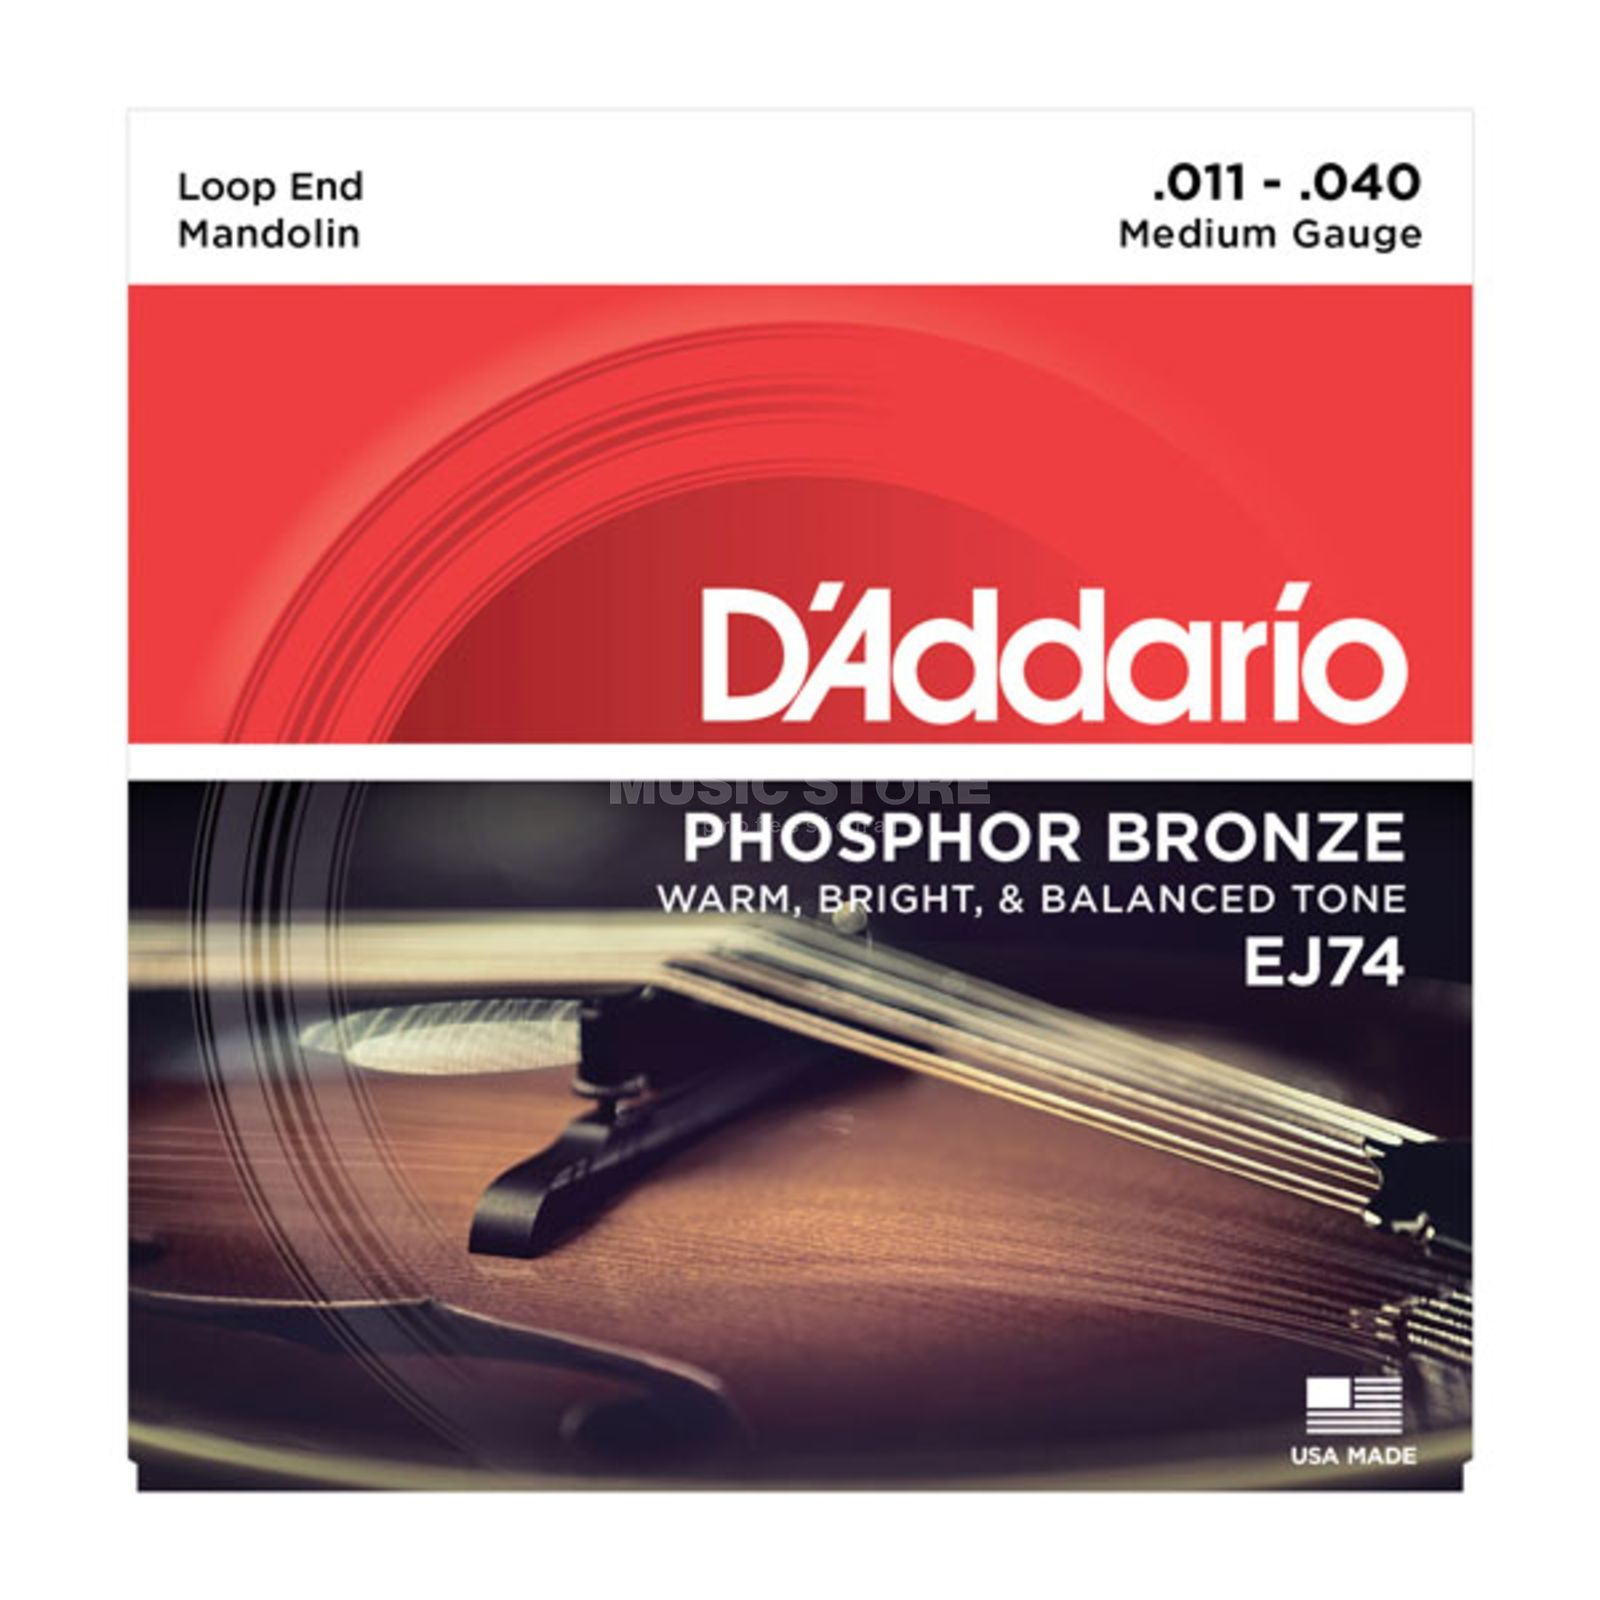 D'Addario Mandolin Strings J74 11-40 Phosphor Bronze Loop End Produktbillede